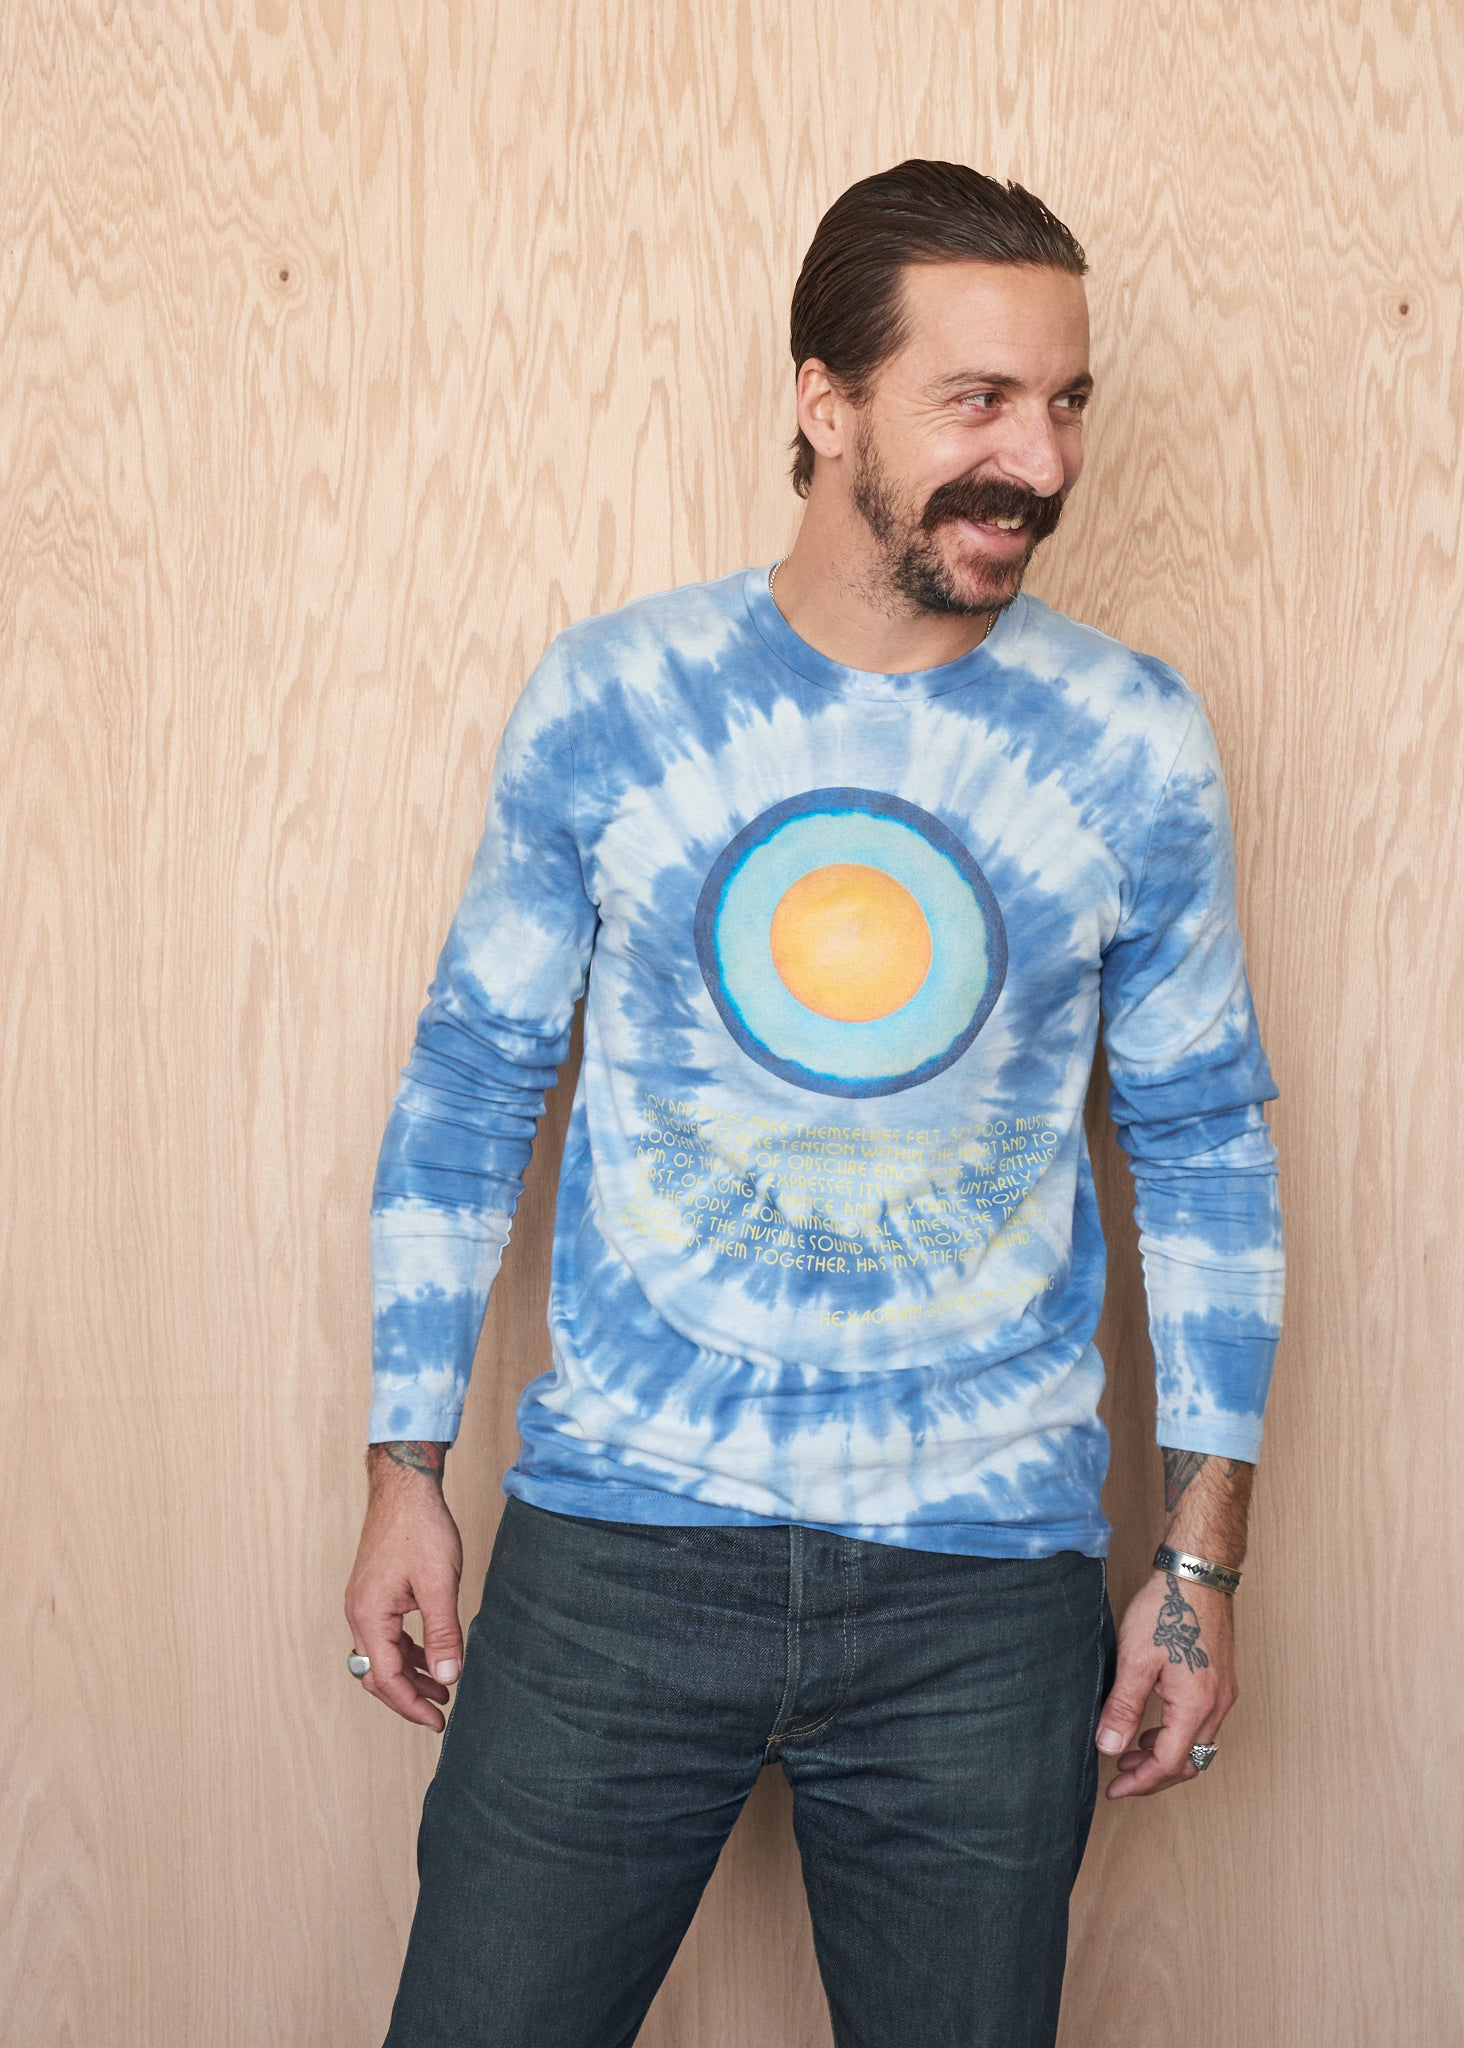 I Ching Woodstock Long-Sleeve T-Shirt - Men's Tee Shirt - Midnight Rider